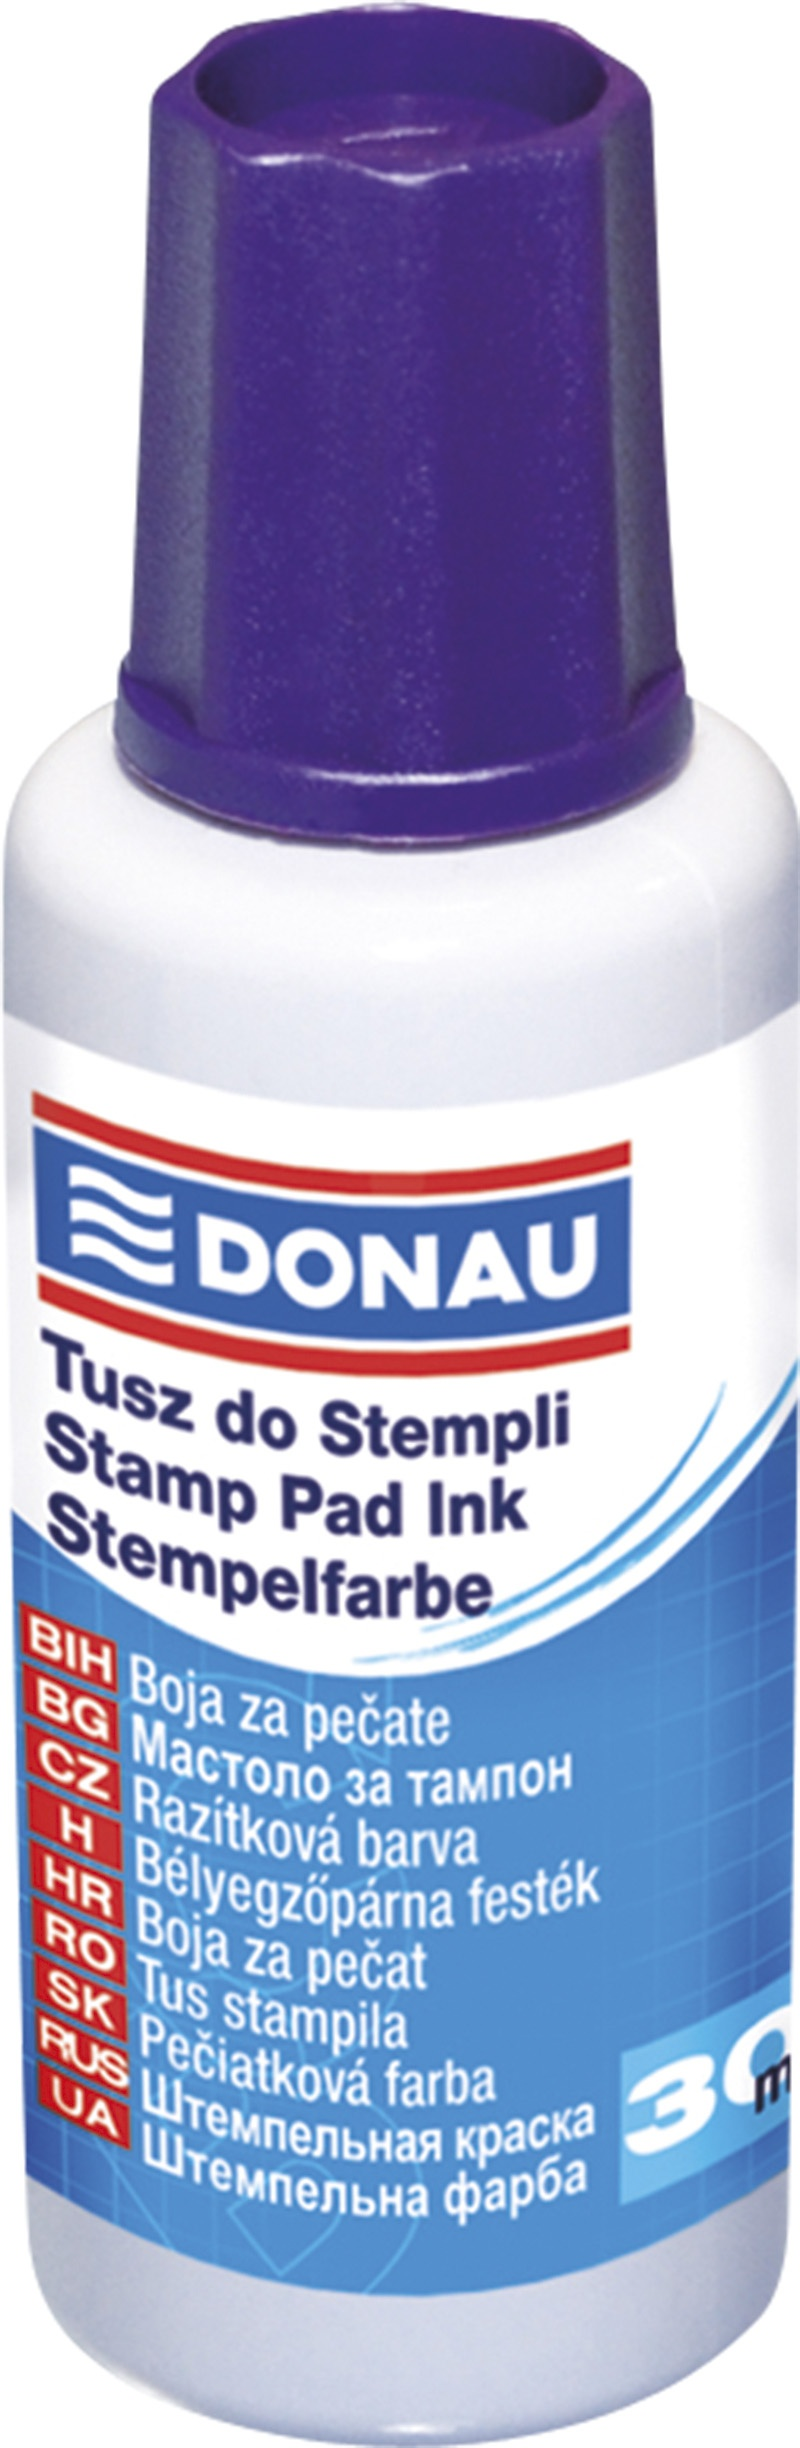 Stamp Ink DONAU, 30ml, purple